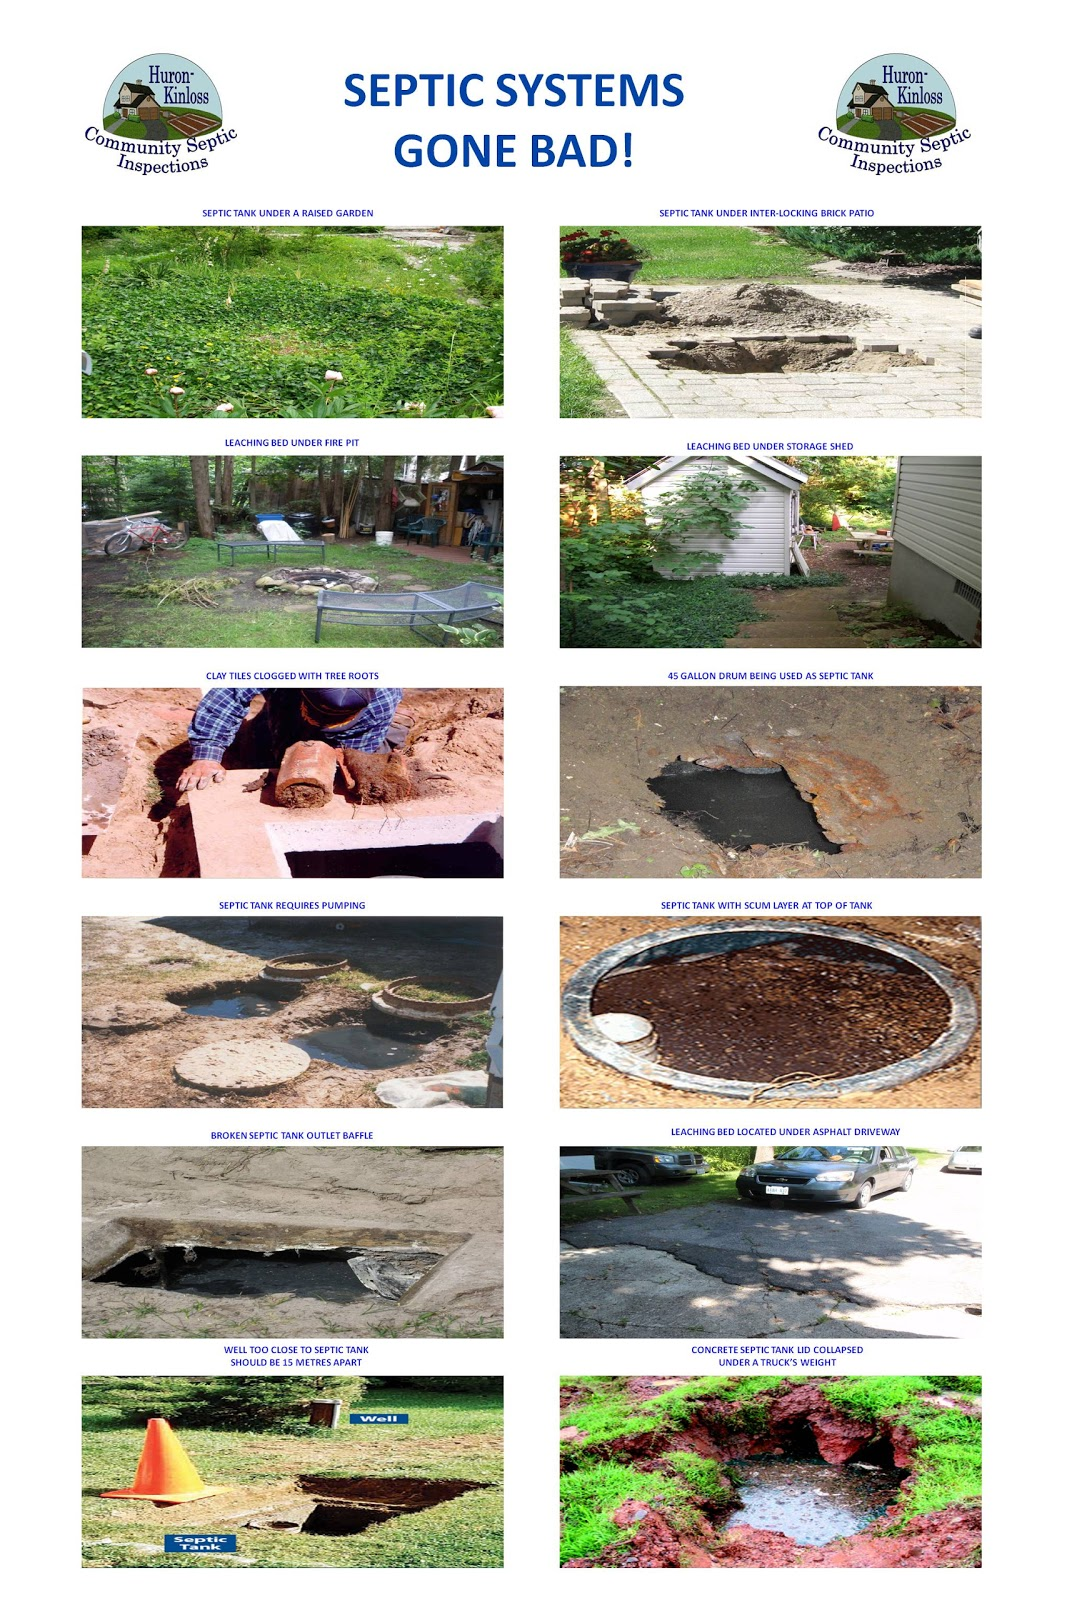 Huron-Kinloss Community Septic Inspections: Septic Systems Gone Bad!